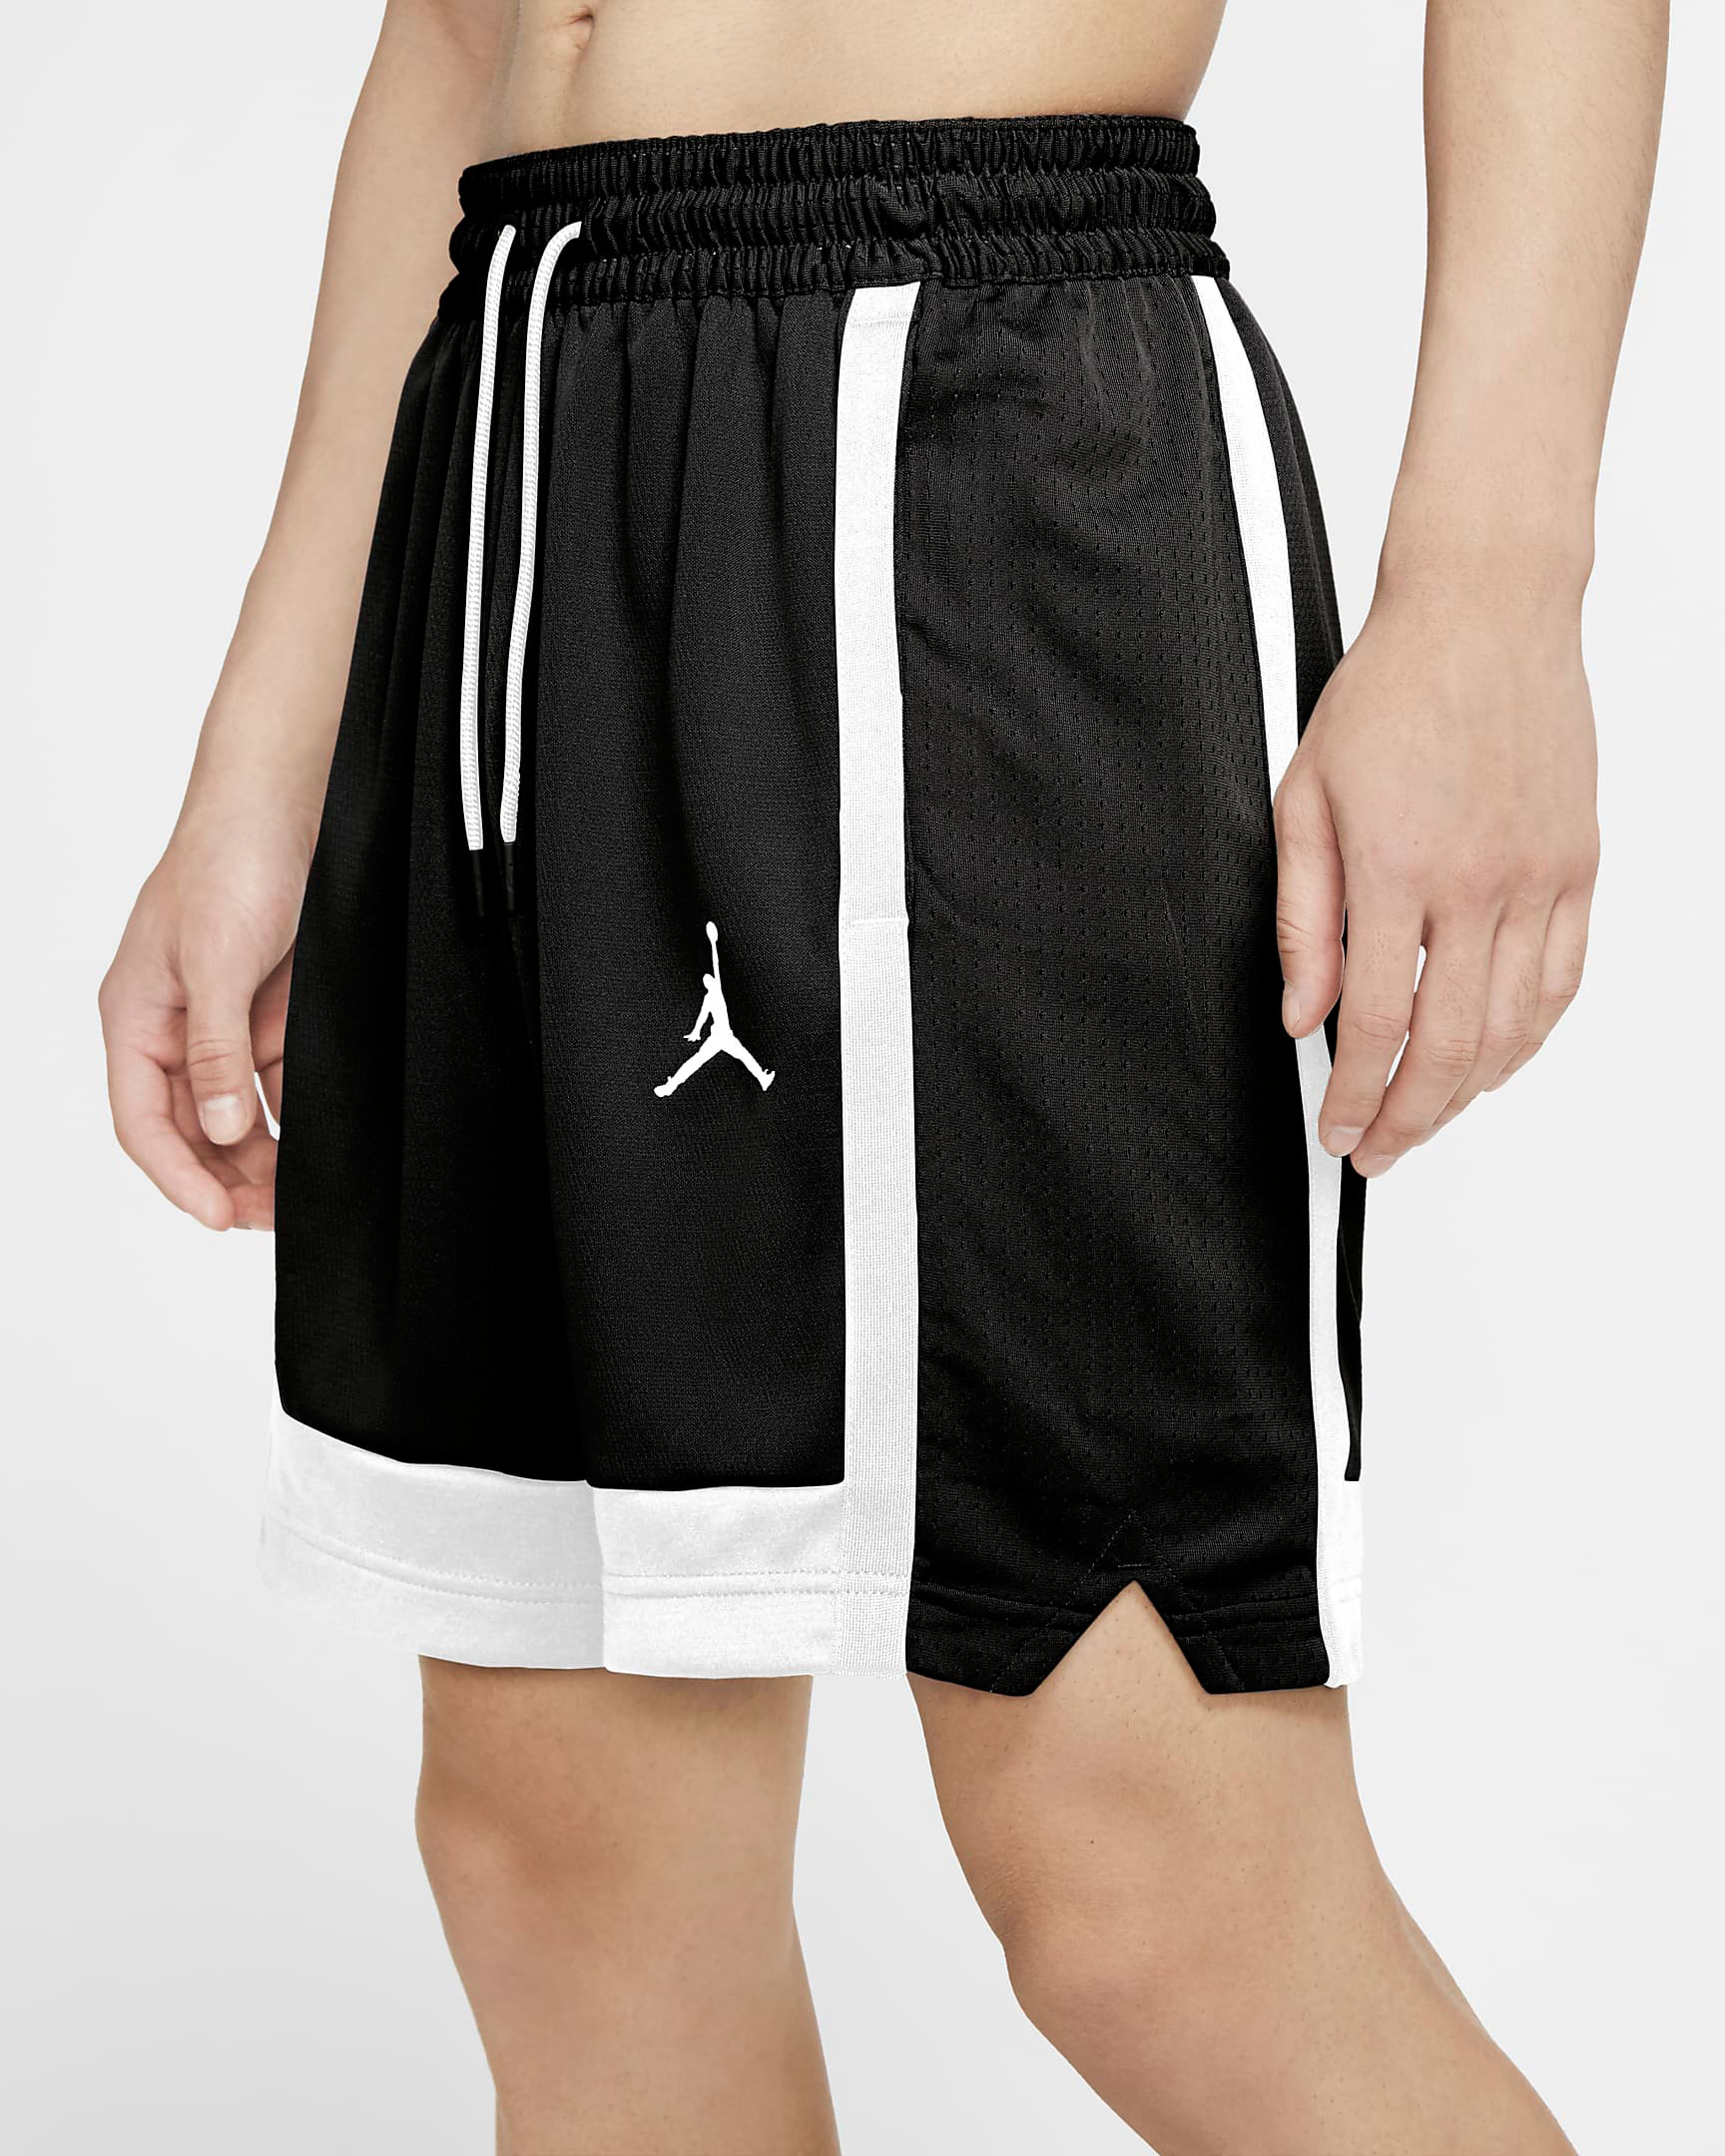 air-jordan-11-jubilee-black-white-jordan-shorts-2